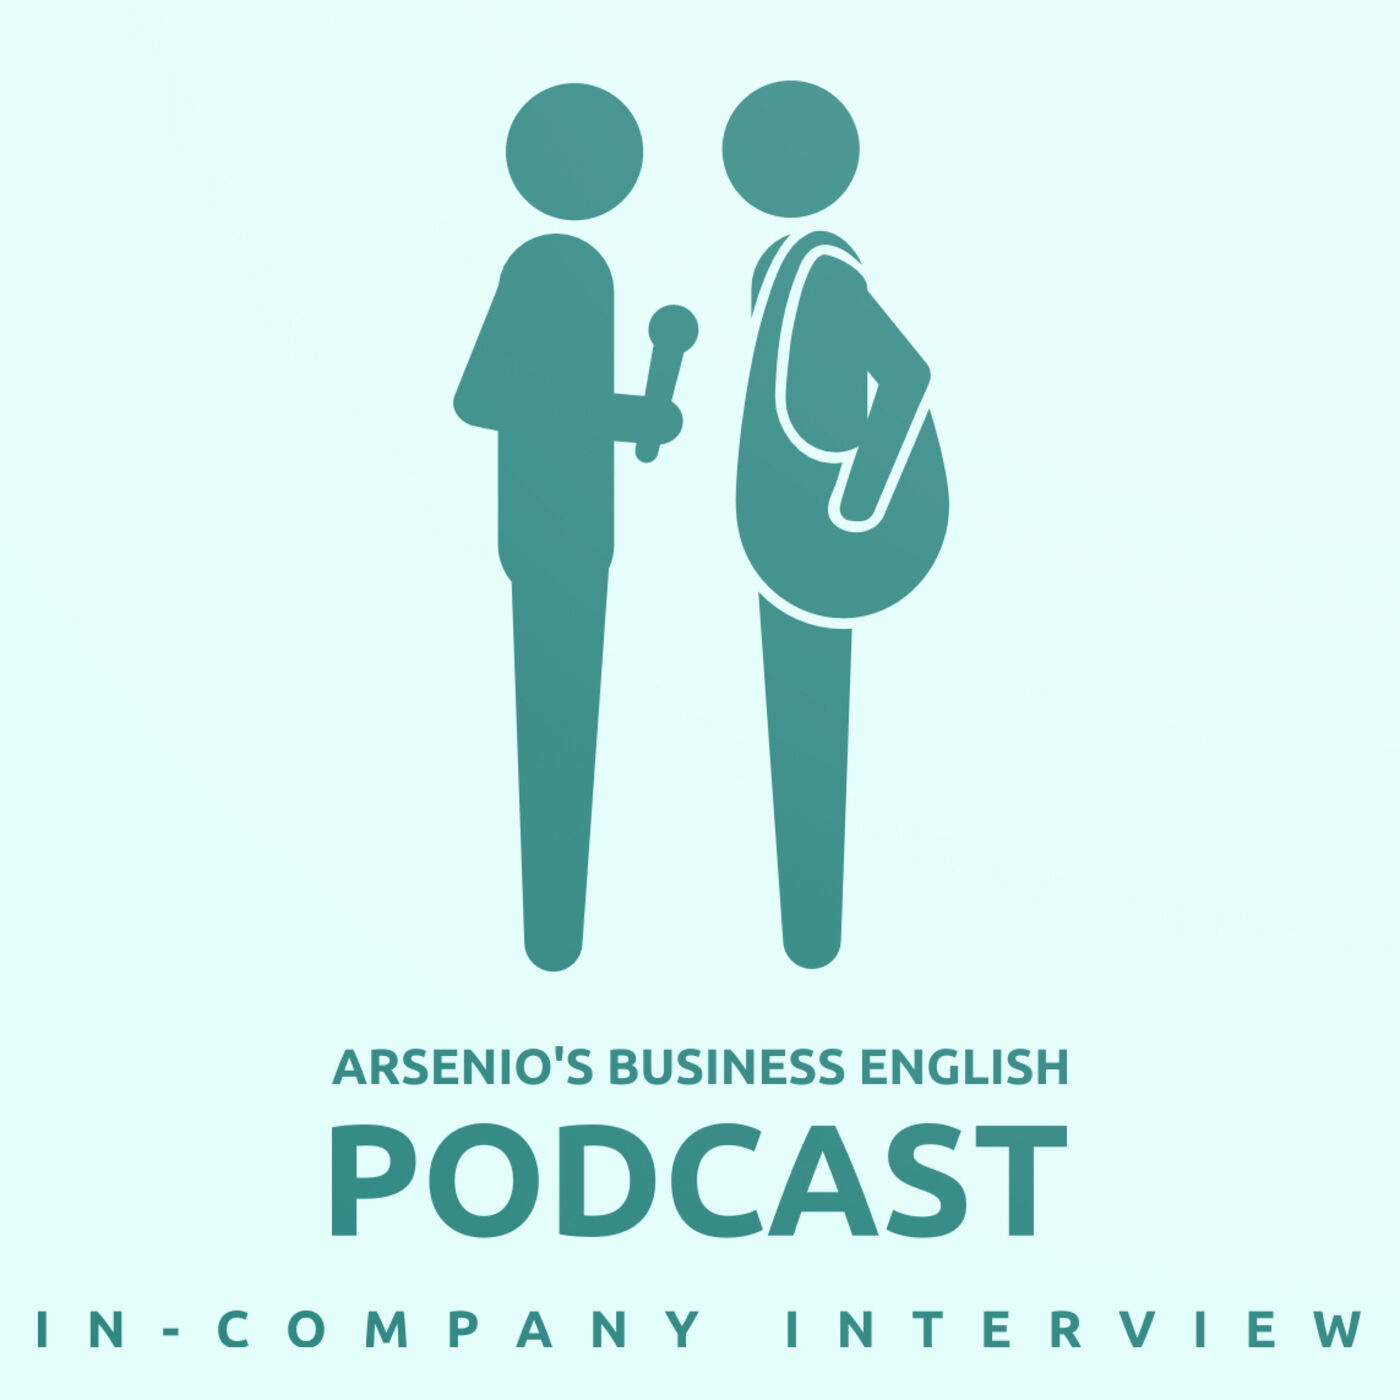 Arsenio's Business English Podcast | Season 6: Episode 6 | In-Company Interview